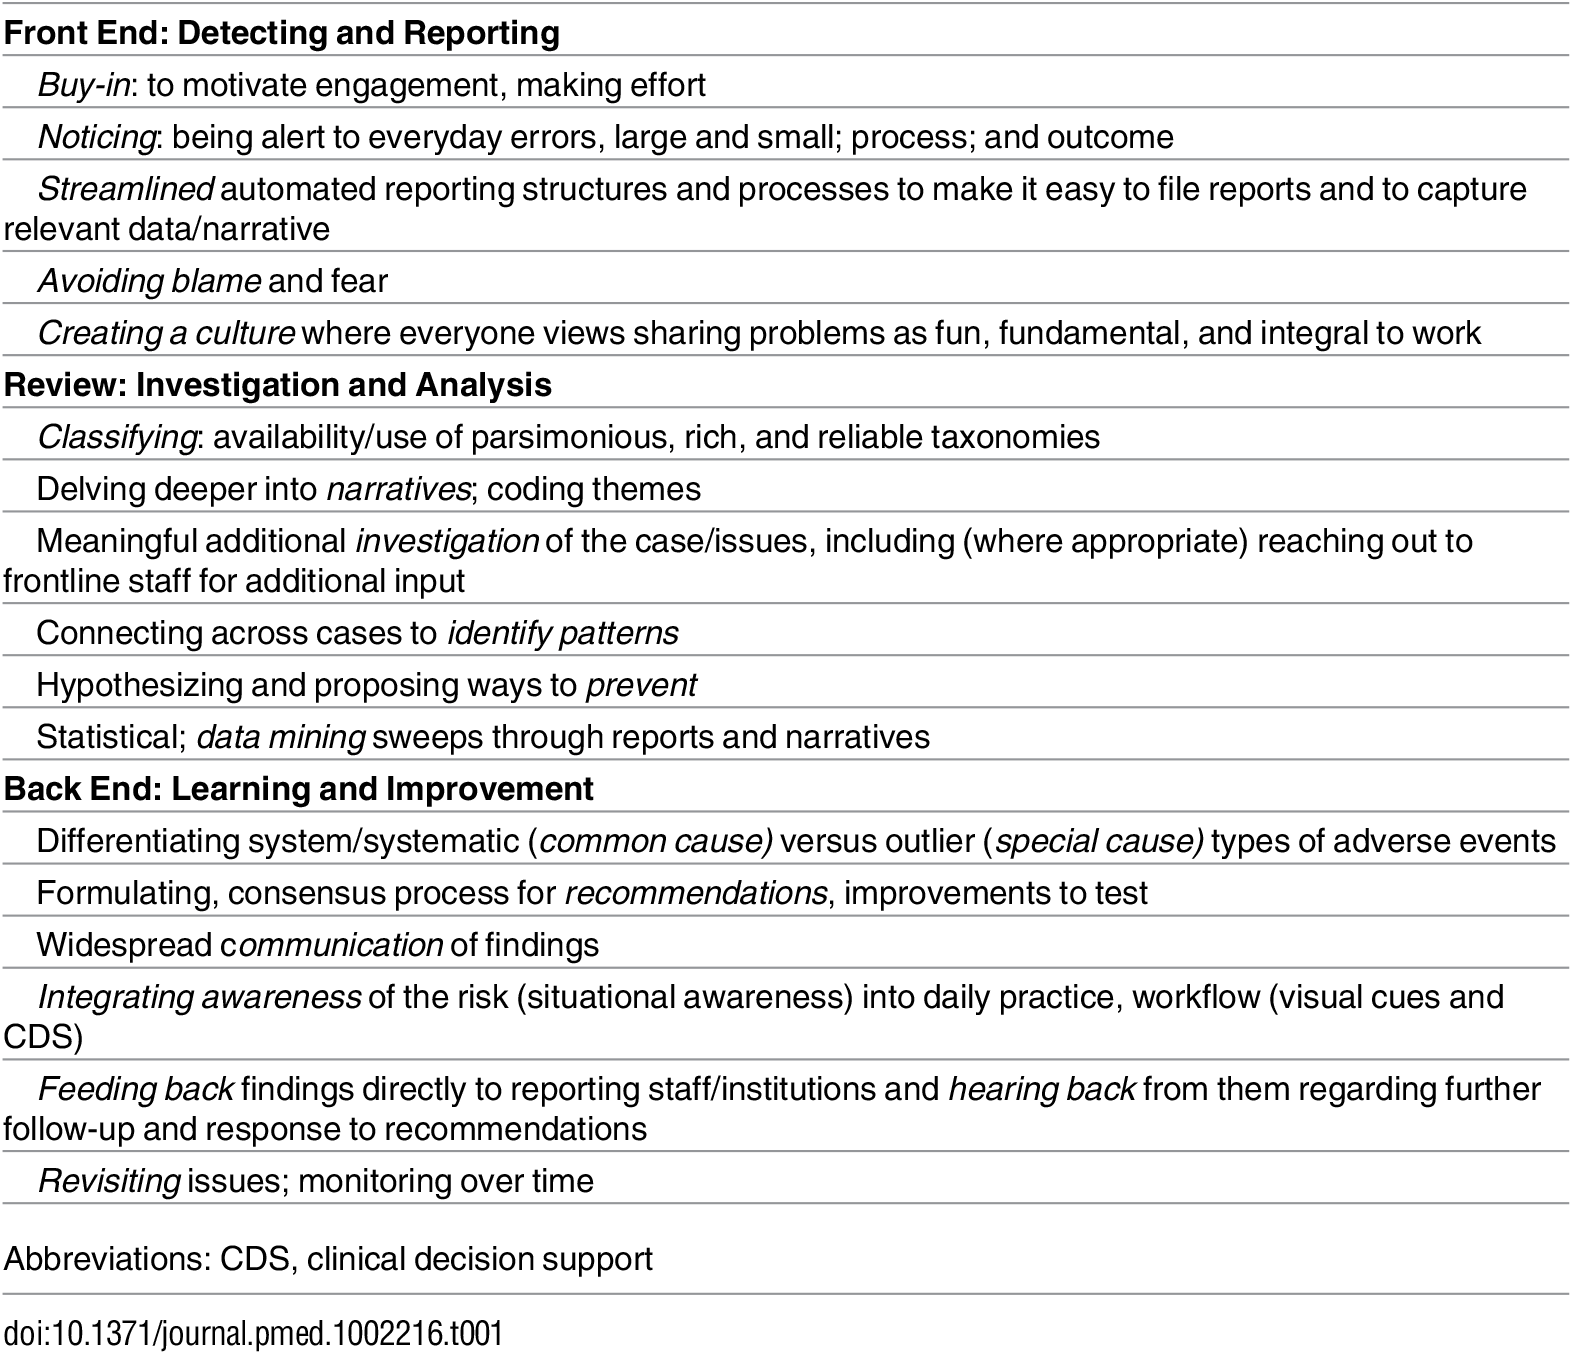 Framework for Nurturing Reporting: Opportunities/Imperatives for Incident Reporting Improvement.